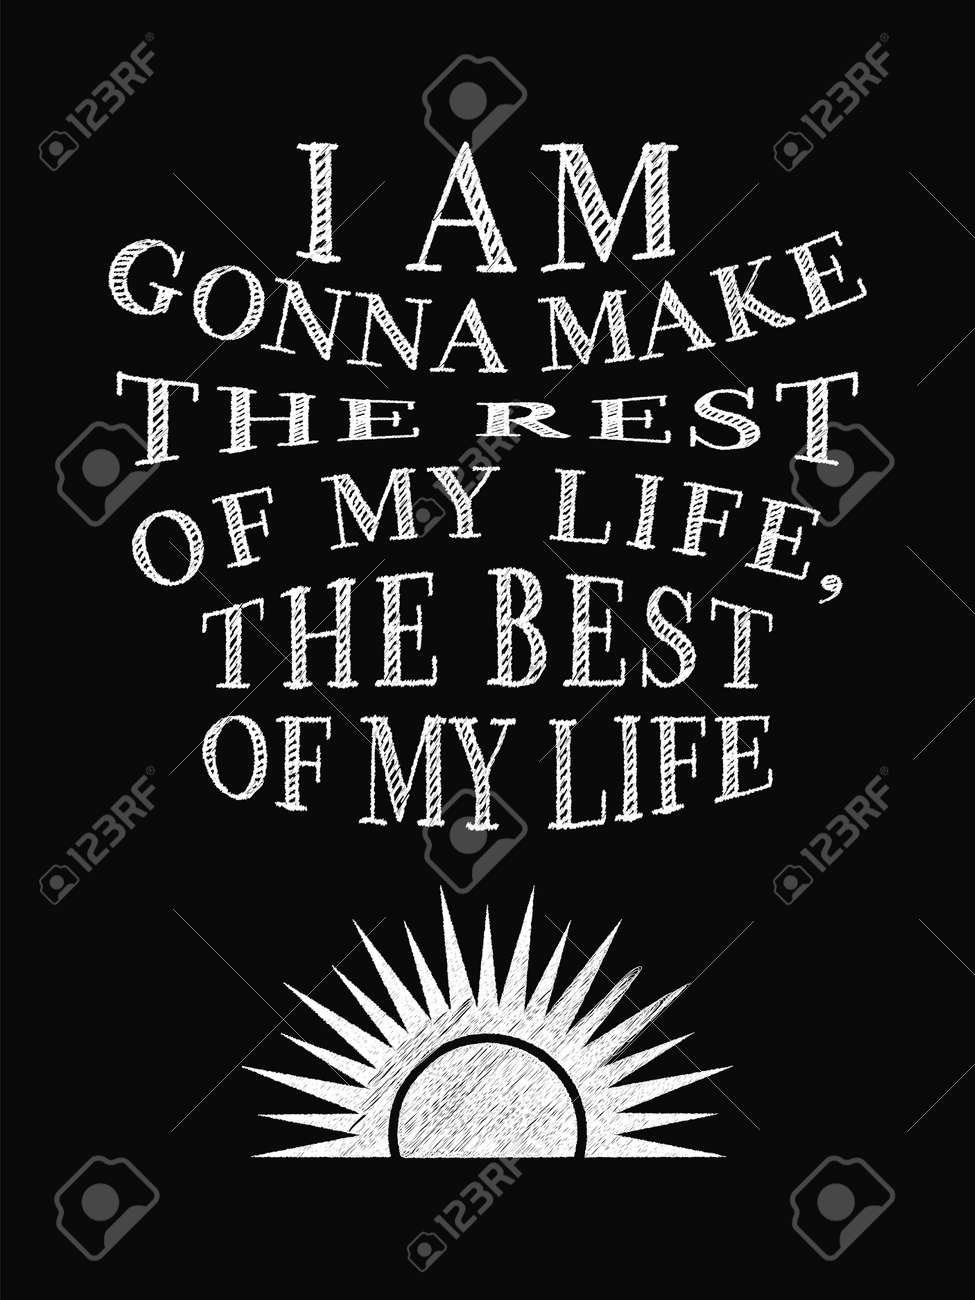 Life Quote Poster Motivational Quote Posteri Am Gonna Make The Rest Of My Life